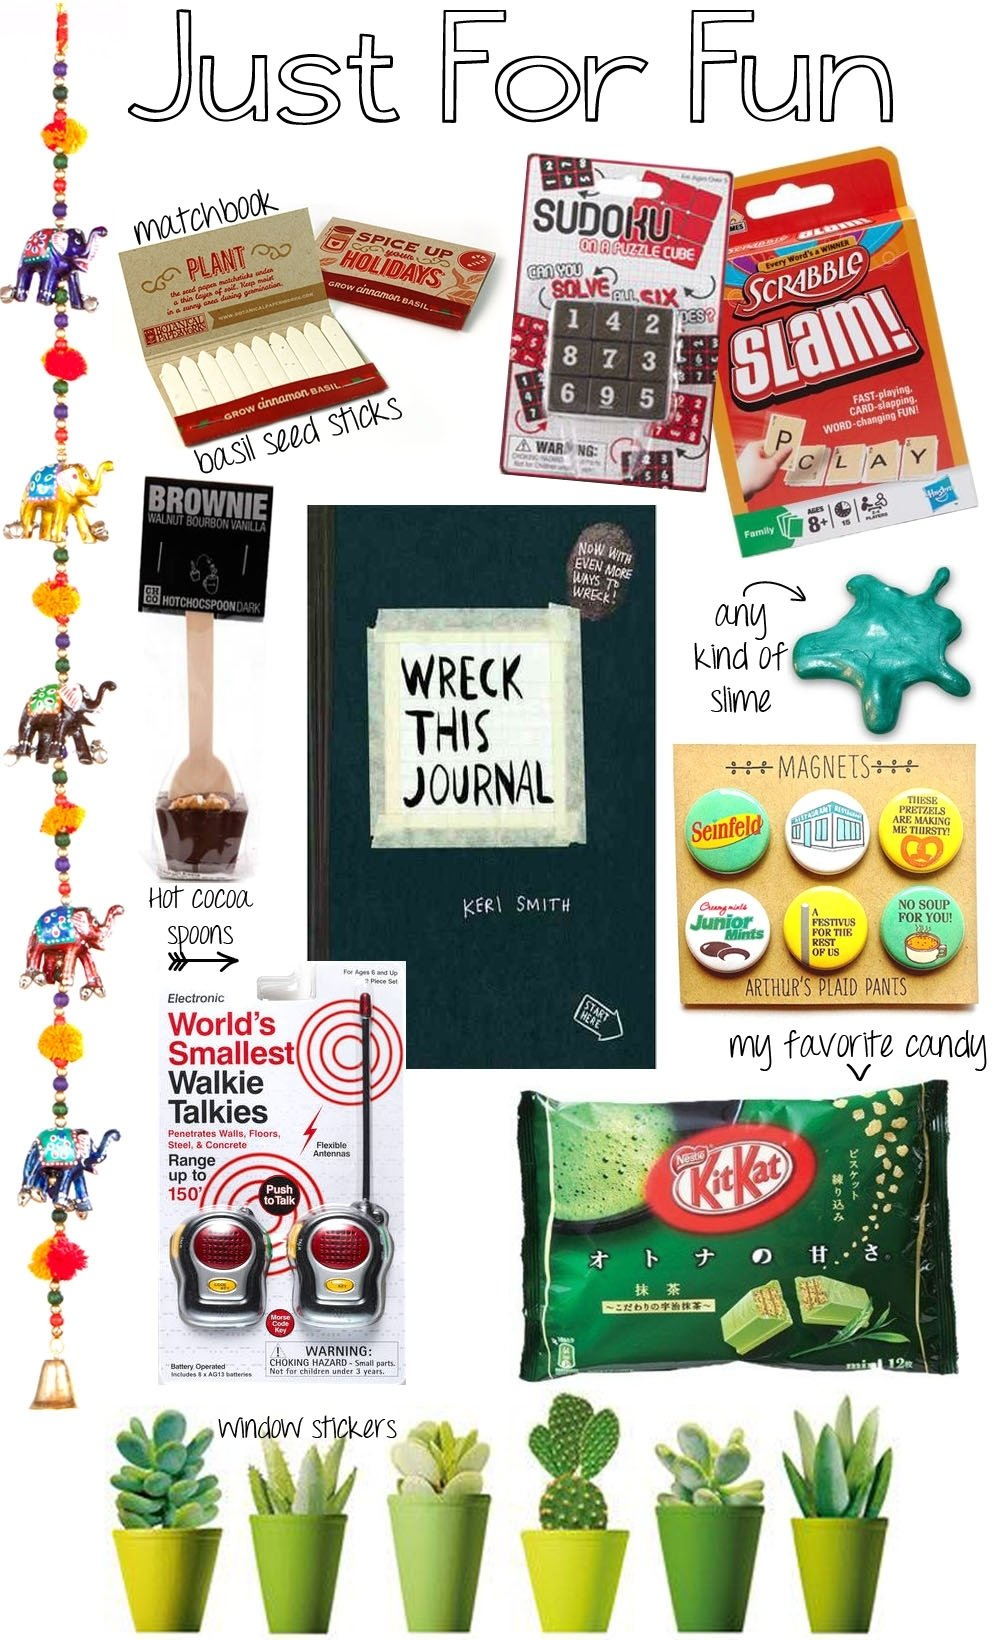 10 Trendy Stocking Stuffers Ideas For Women stocking stuffers for her making mondays 4 2020